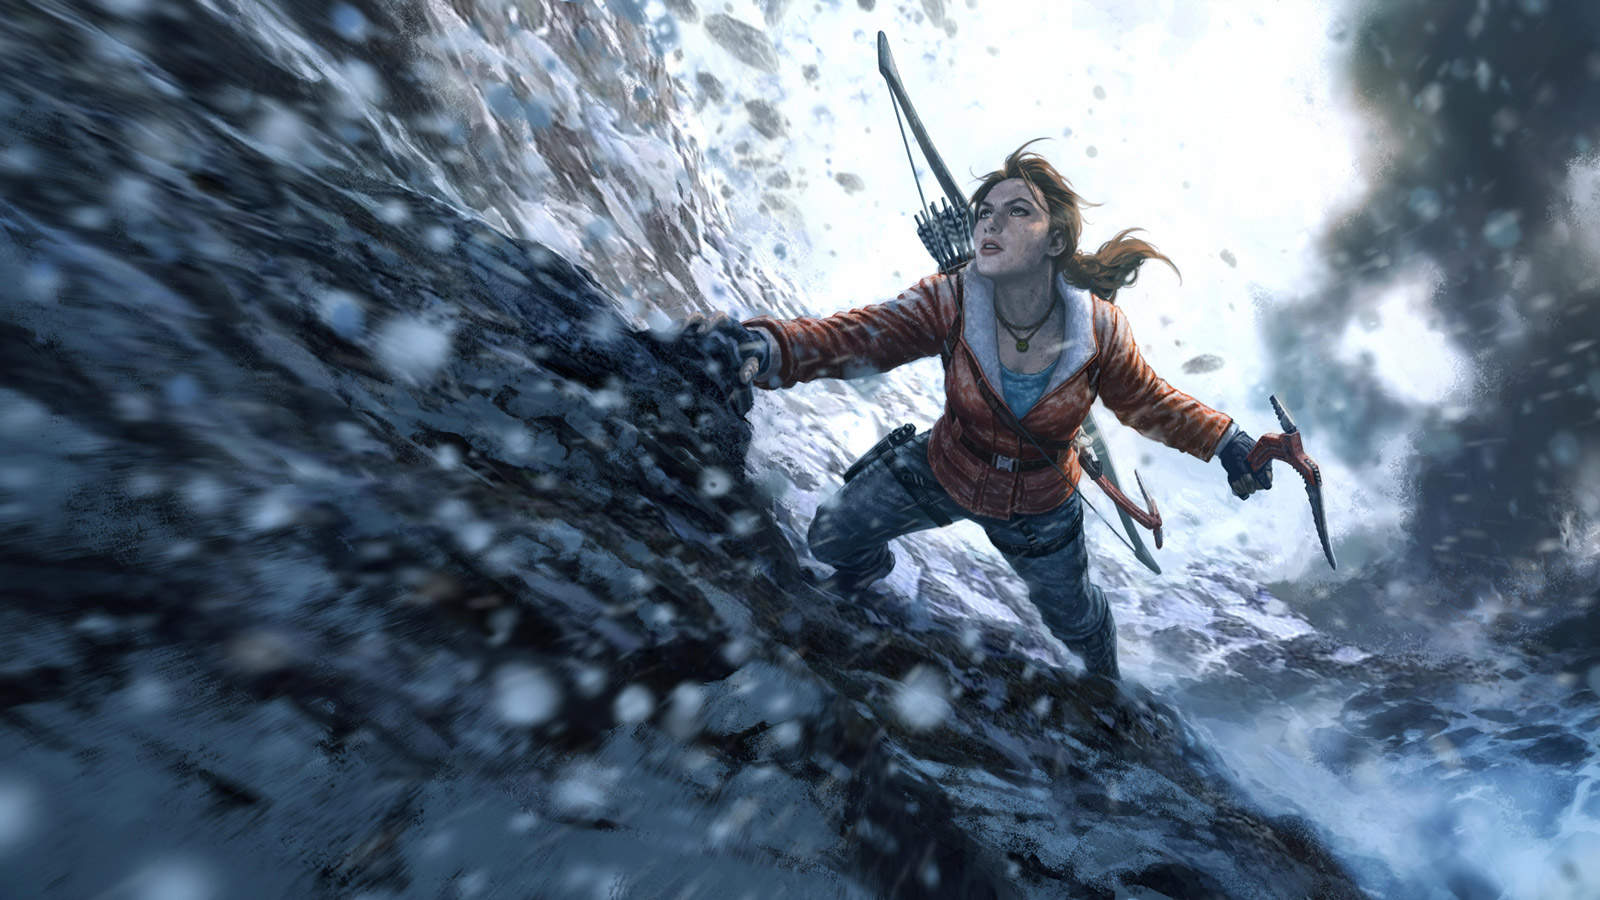 Free Rise of the Tomb Raider Wallpaper in 1600x900